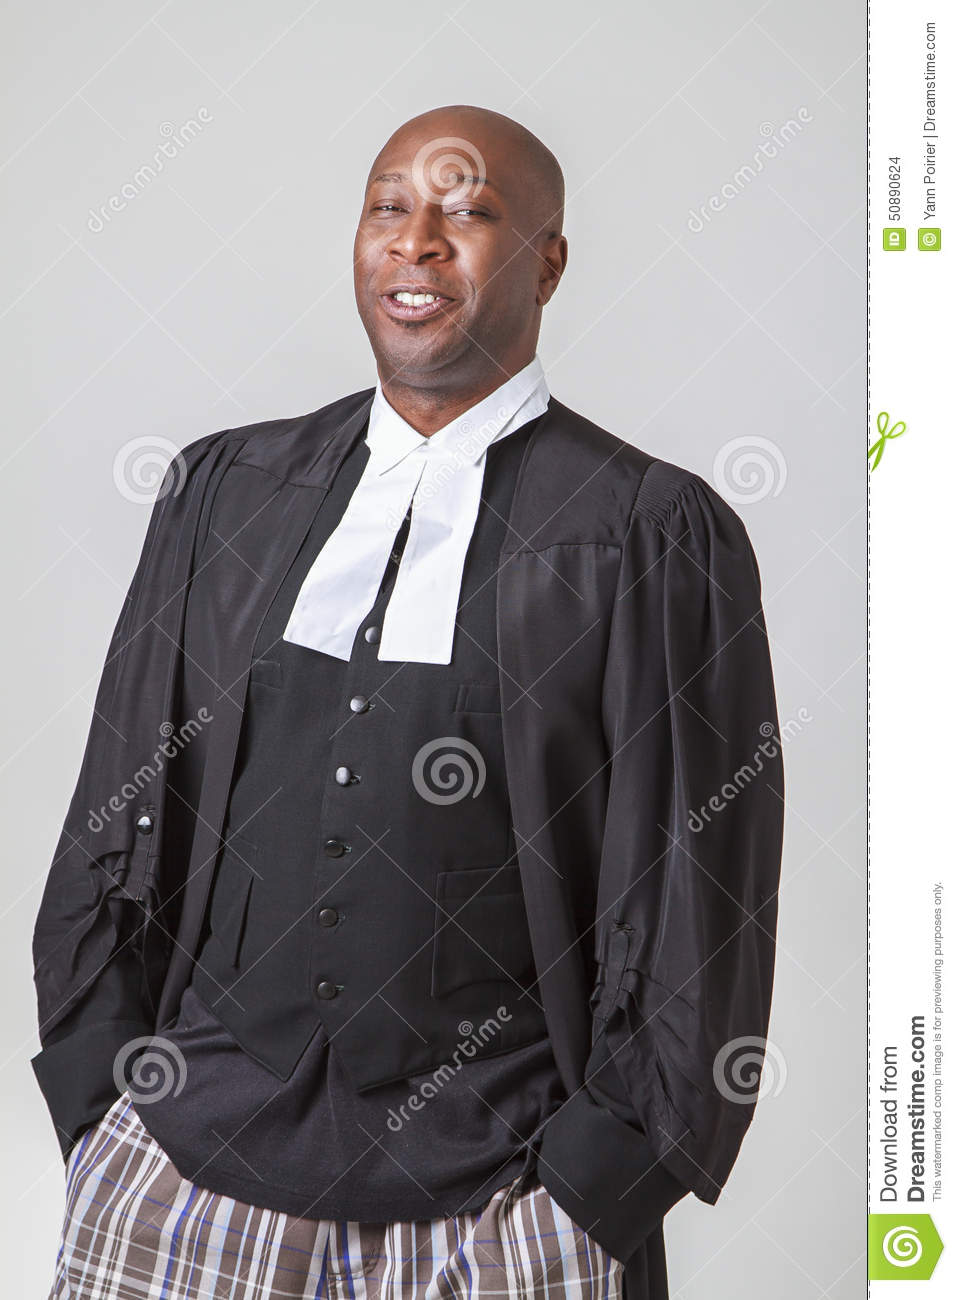 African American Lawyer